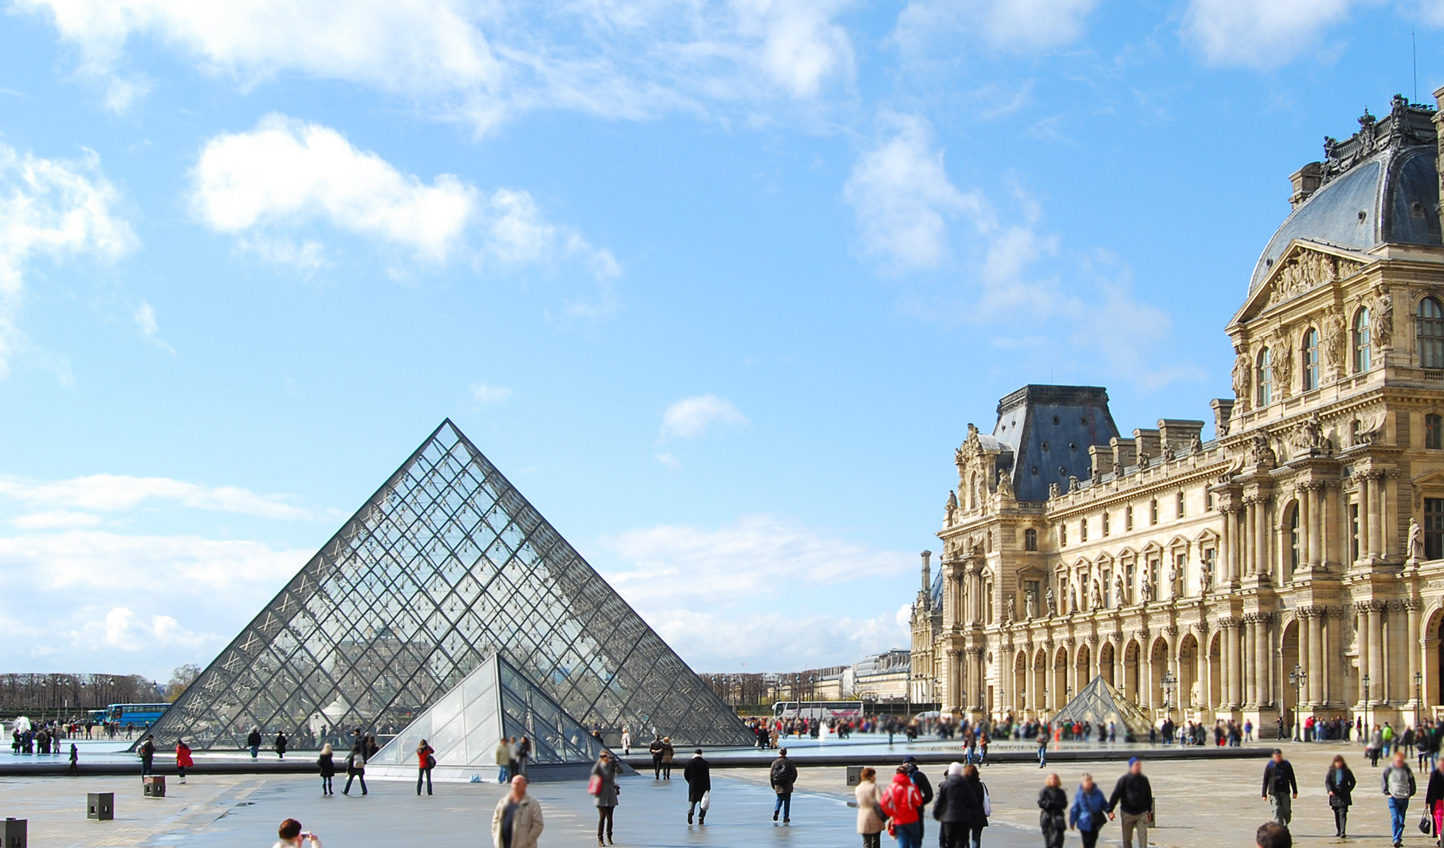 See the Mona Lisa for yourself at the Louvre